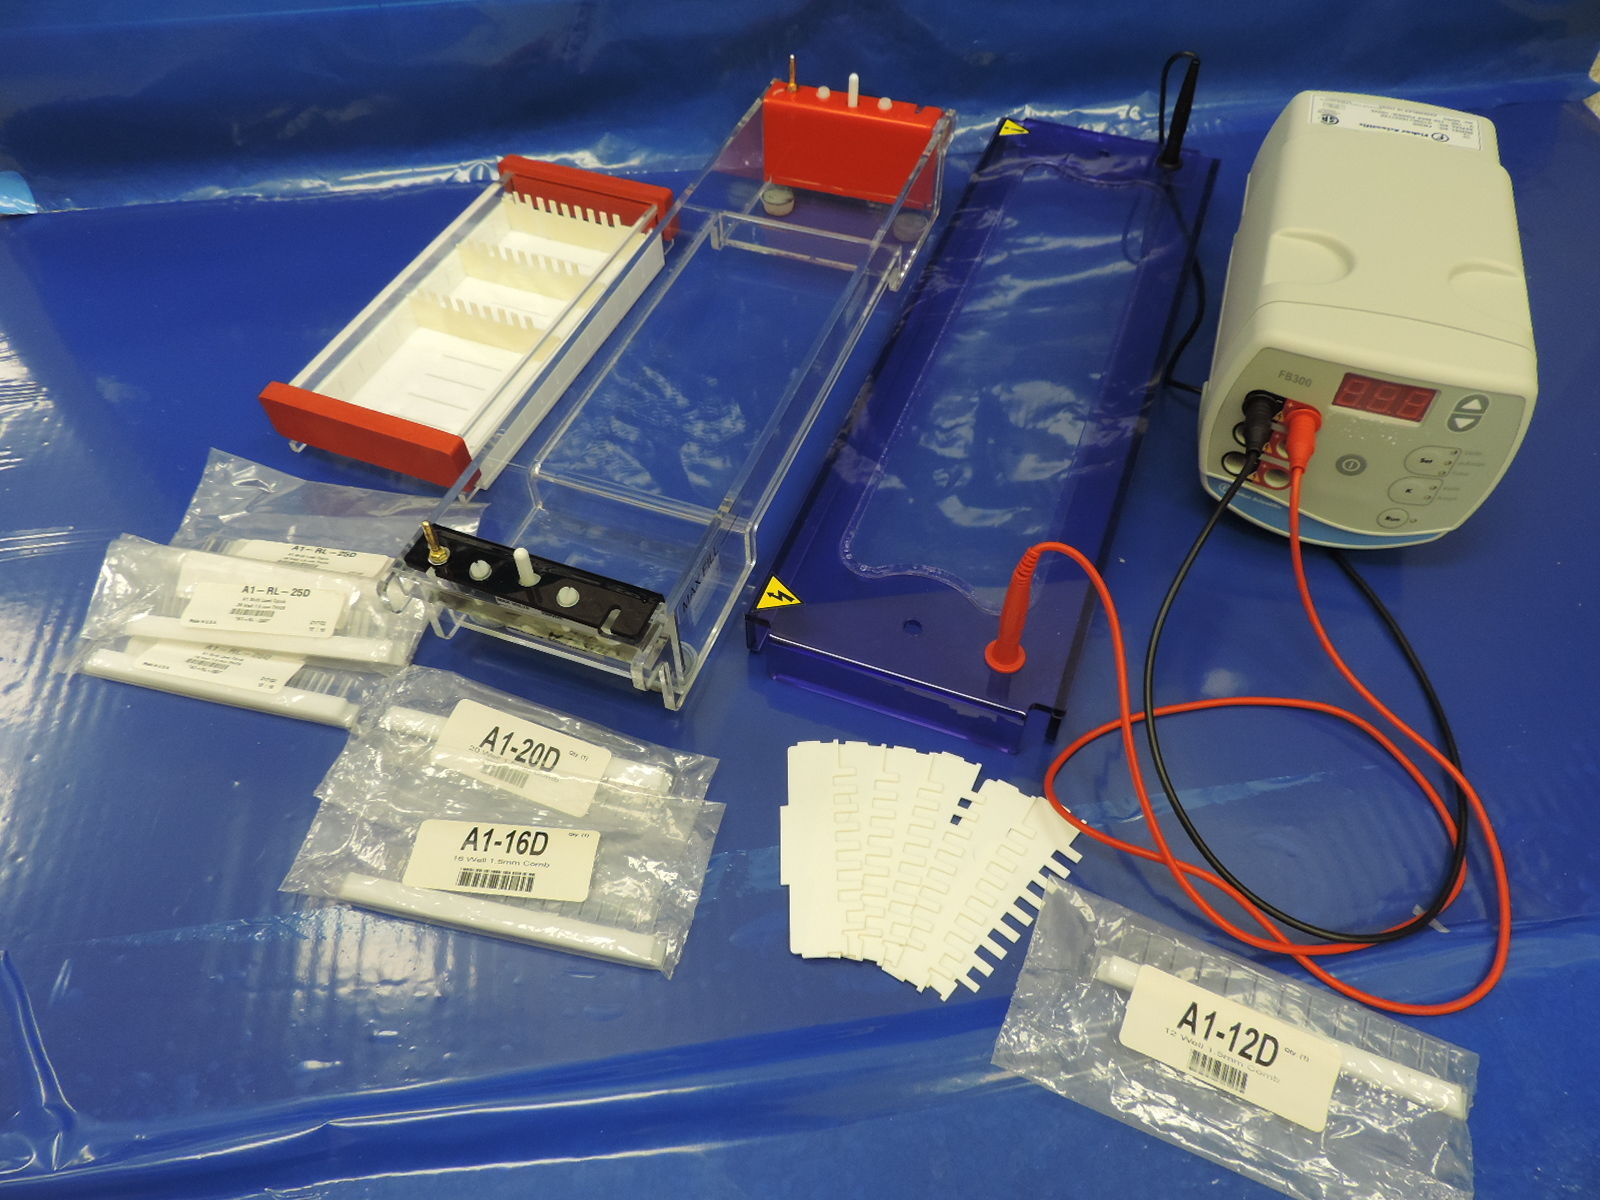 Cleaver Electrophoresis System with Fisher Scientific